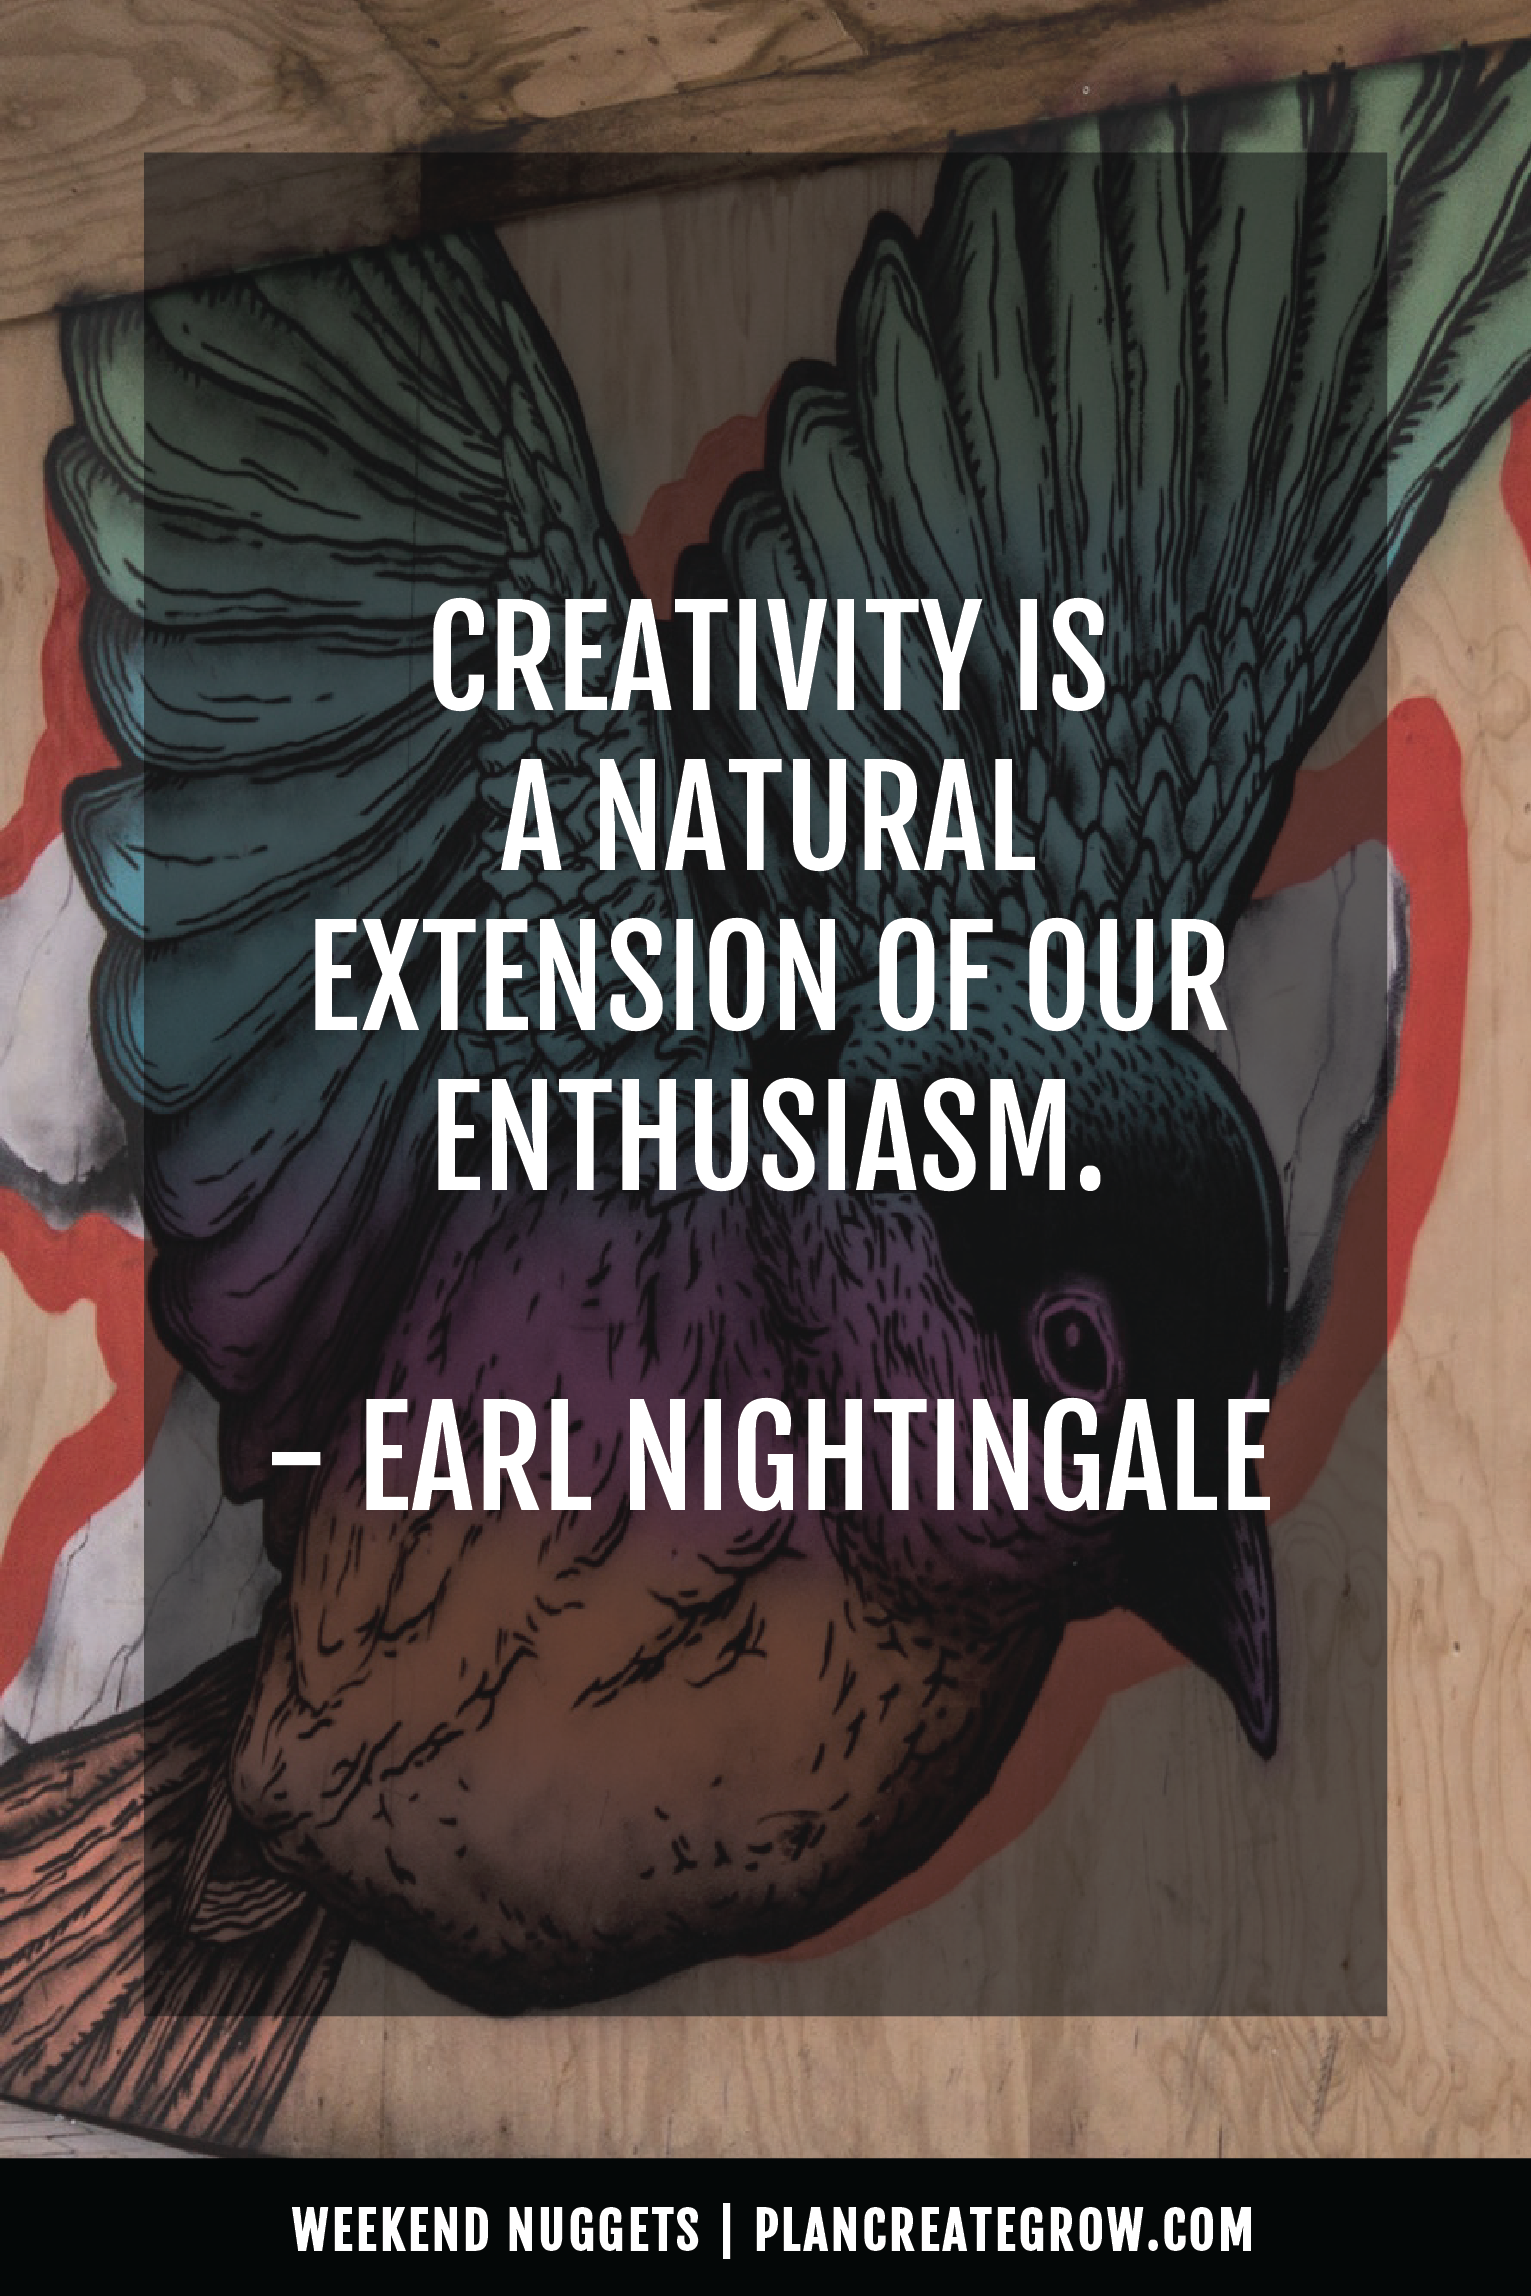 """""""Creativity is a natural extension of our enthusiasm."""" - Earl Nightingale  This image forms part of a series called Weekend Nuggets - a collection of quotes and ideas curated to delight and inspire - shared each weekend. For more, visit plancreategrow.com/weekend-nuggets."""